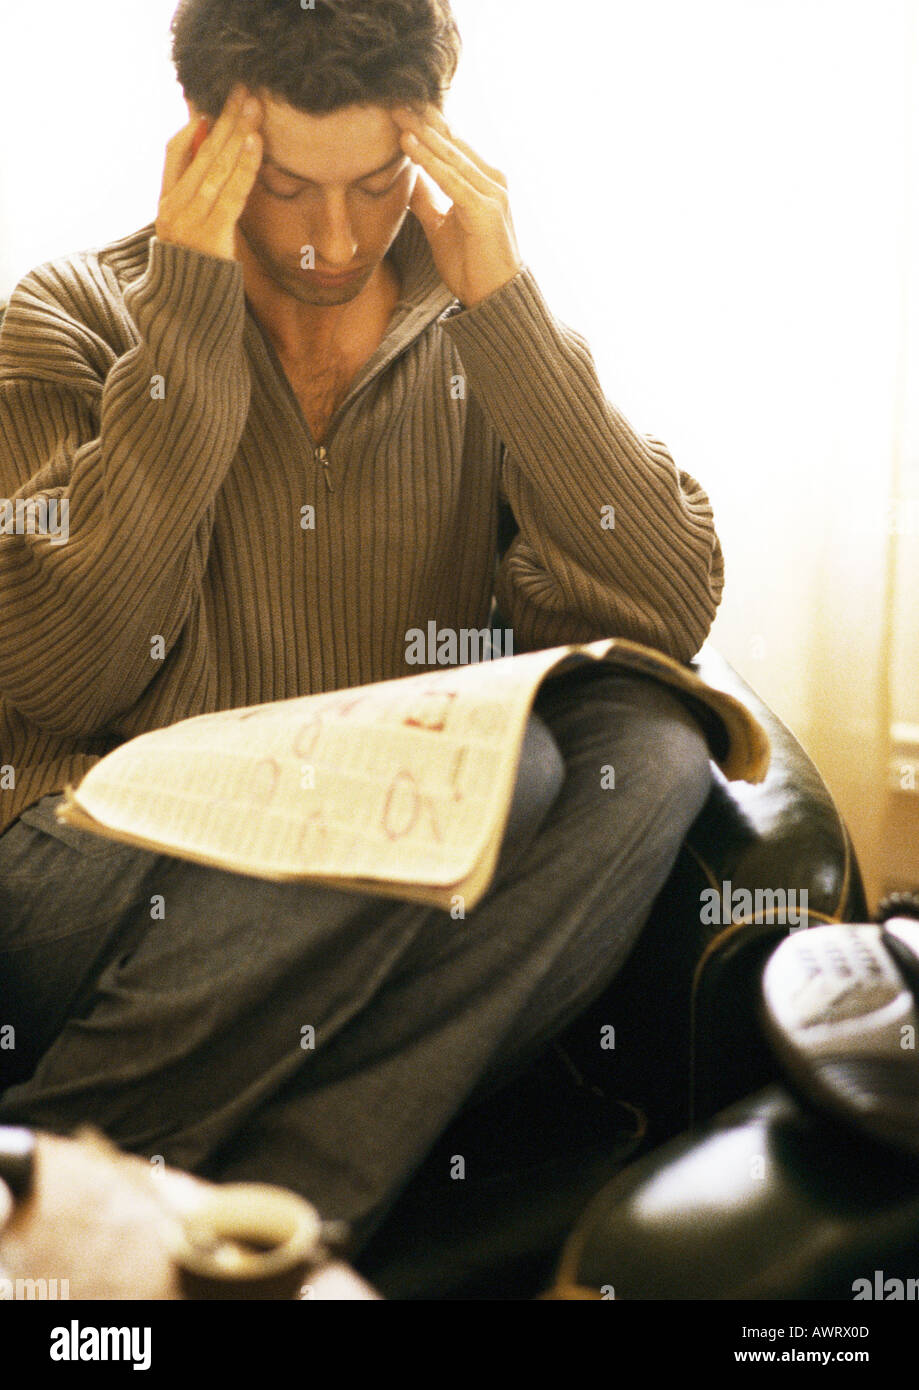 Man rubbing head with newspaper on knees - Stock Image